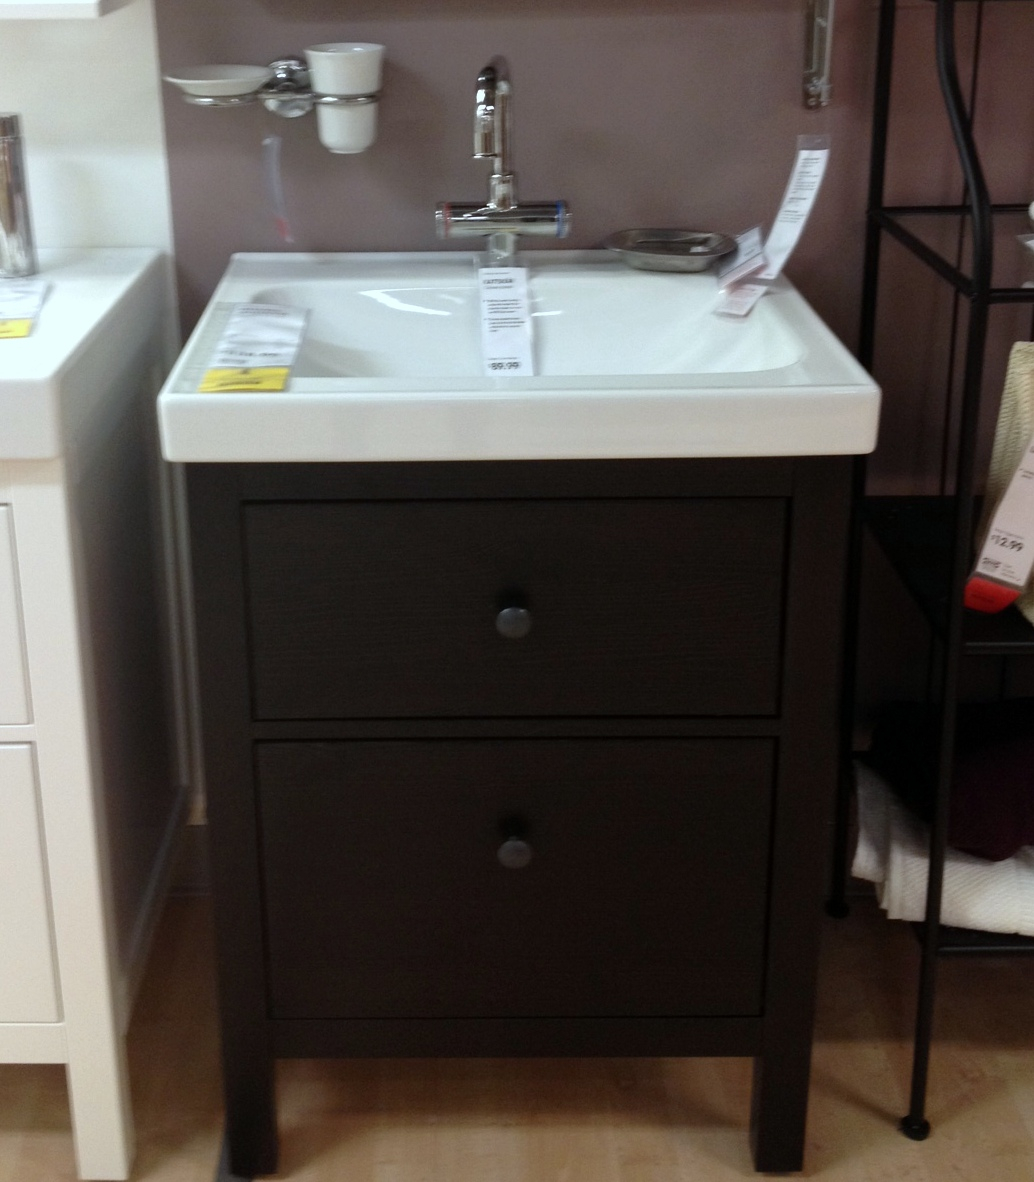 Fancy Bathroom Vanity Ikea Canada | Modern Bathroom Decoration pertaining to Bathroom Vanities Ikea